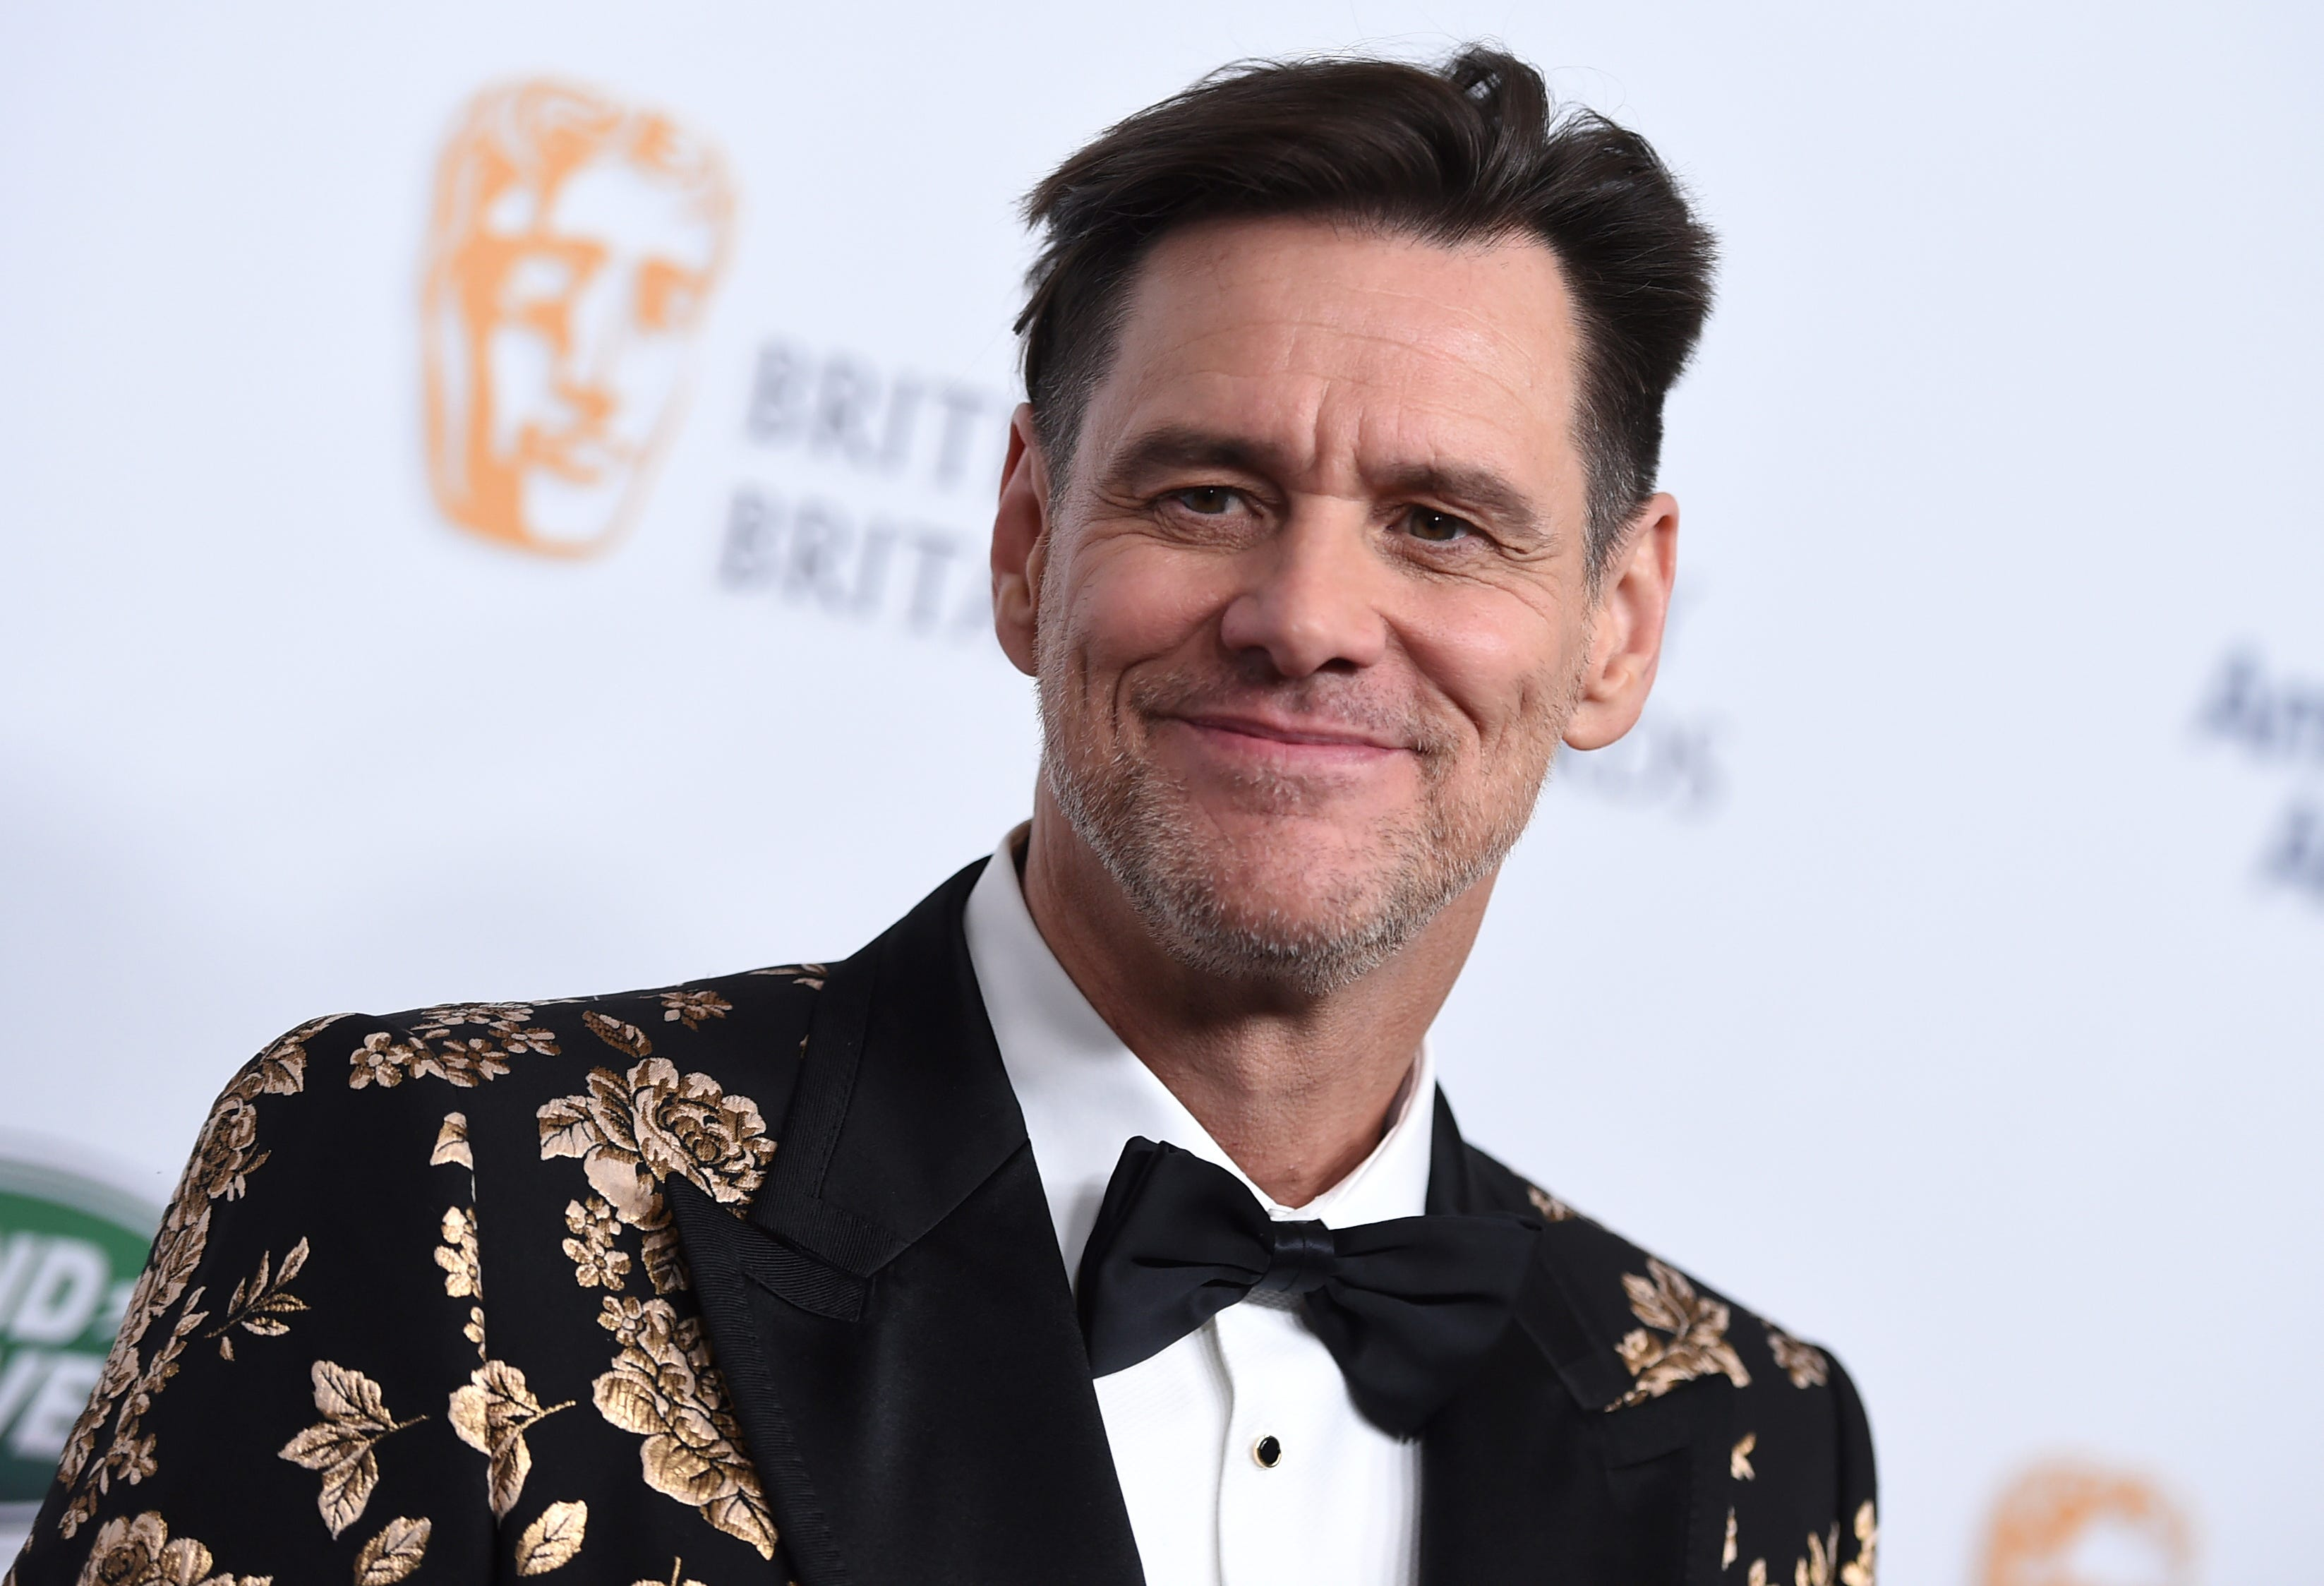 'Baby snakes': Jim Carrey goes after Covington Catholic students in latest artwork